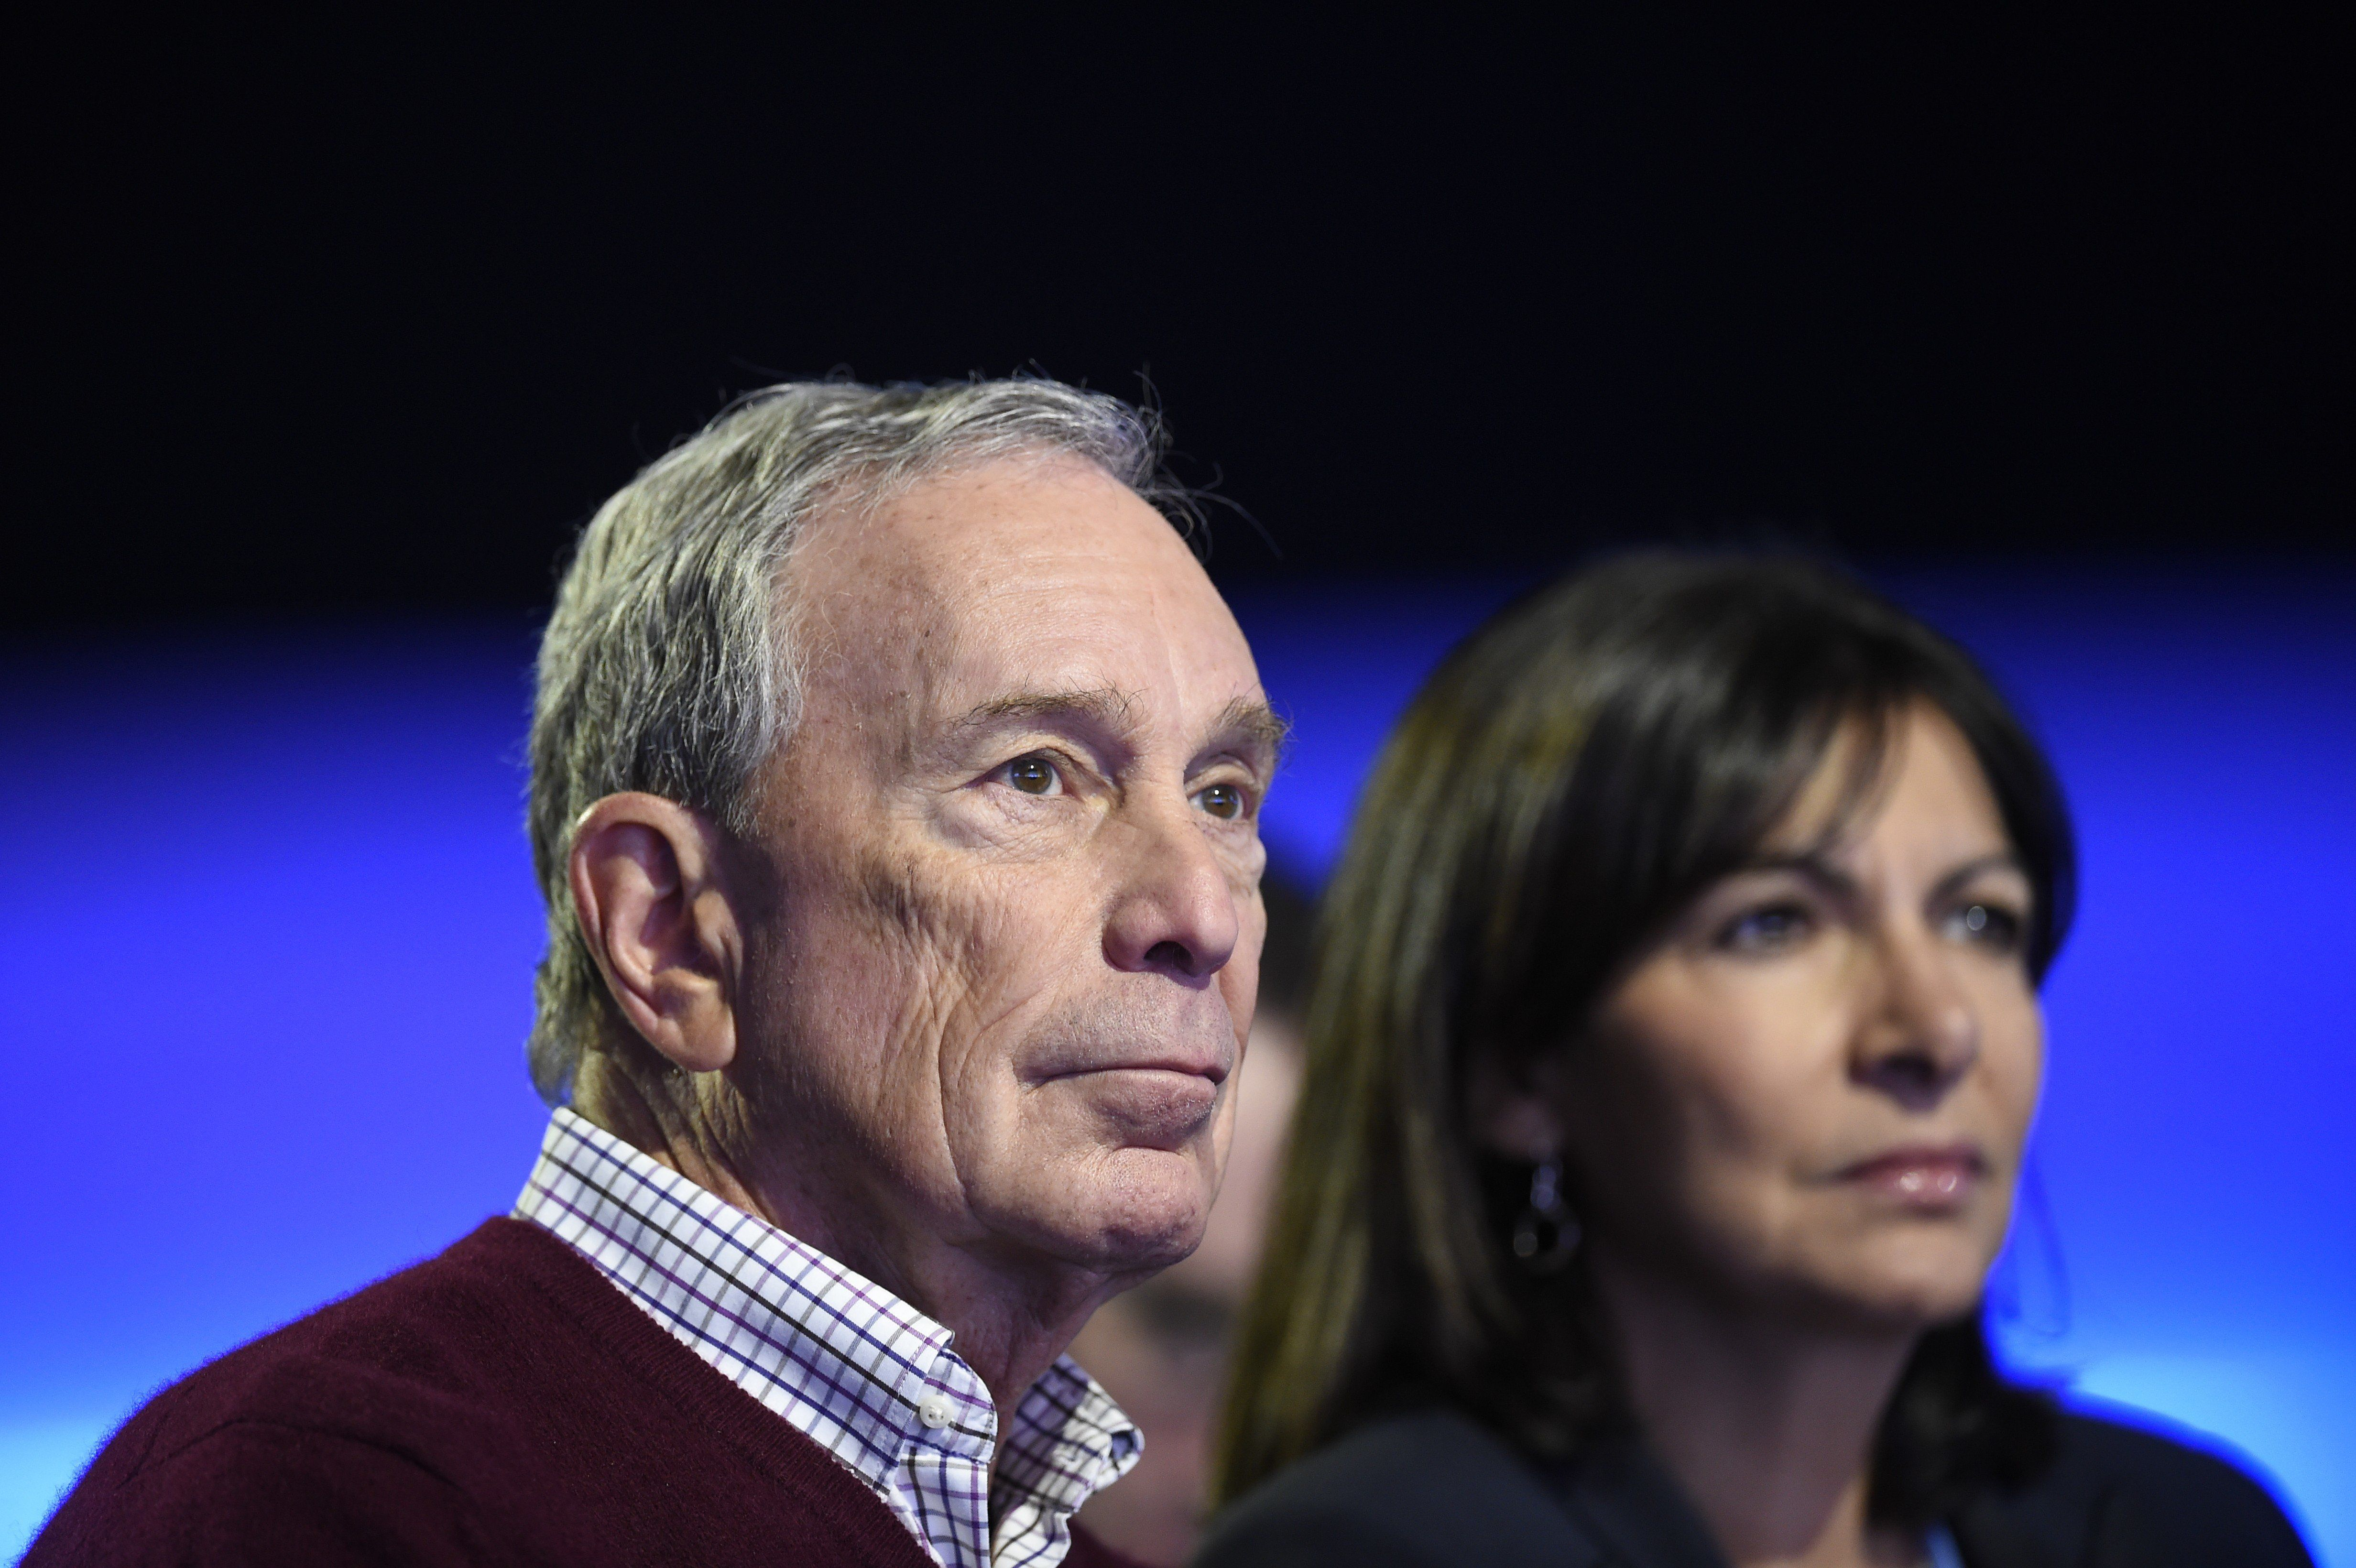 Former mayor of New York Michael Bloomberg (L) and Mayor of Paris Anne Hidalgo attend a working session for 'Action Day' at the COP21 United Nations conference on climate change in Le Bourget on December 5, 2015. AFP PHOTO / ERIC FEFERBERG / AFP / ERIC FEFERBERG        (Photo credit should read ERIC FEFERBERG/AFP/Getty Images)